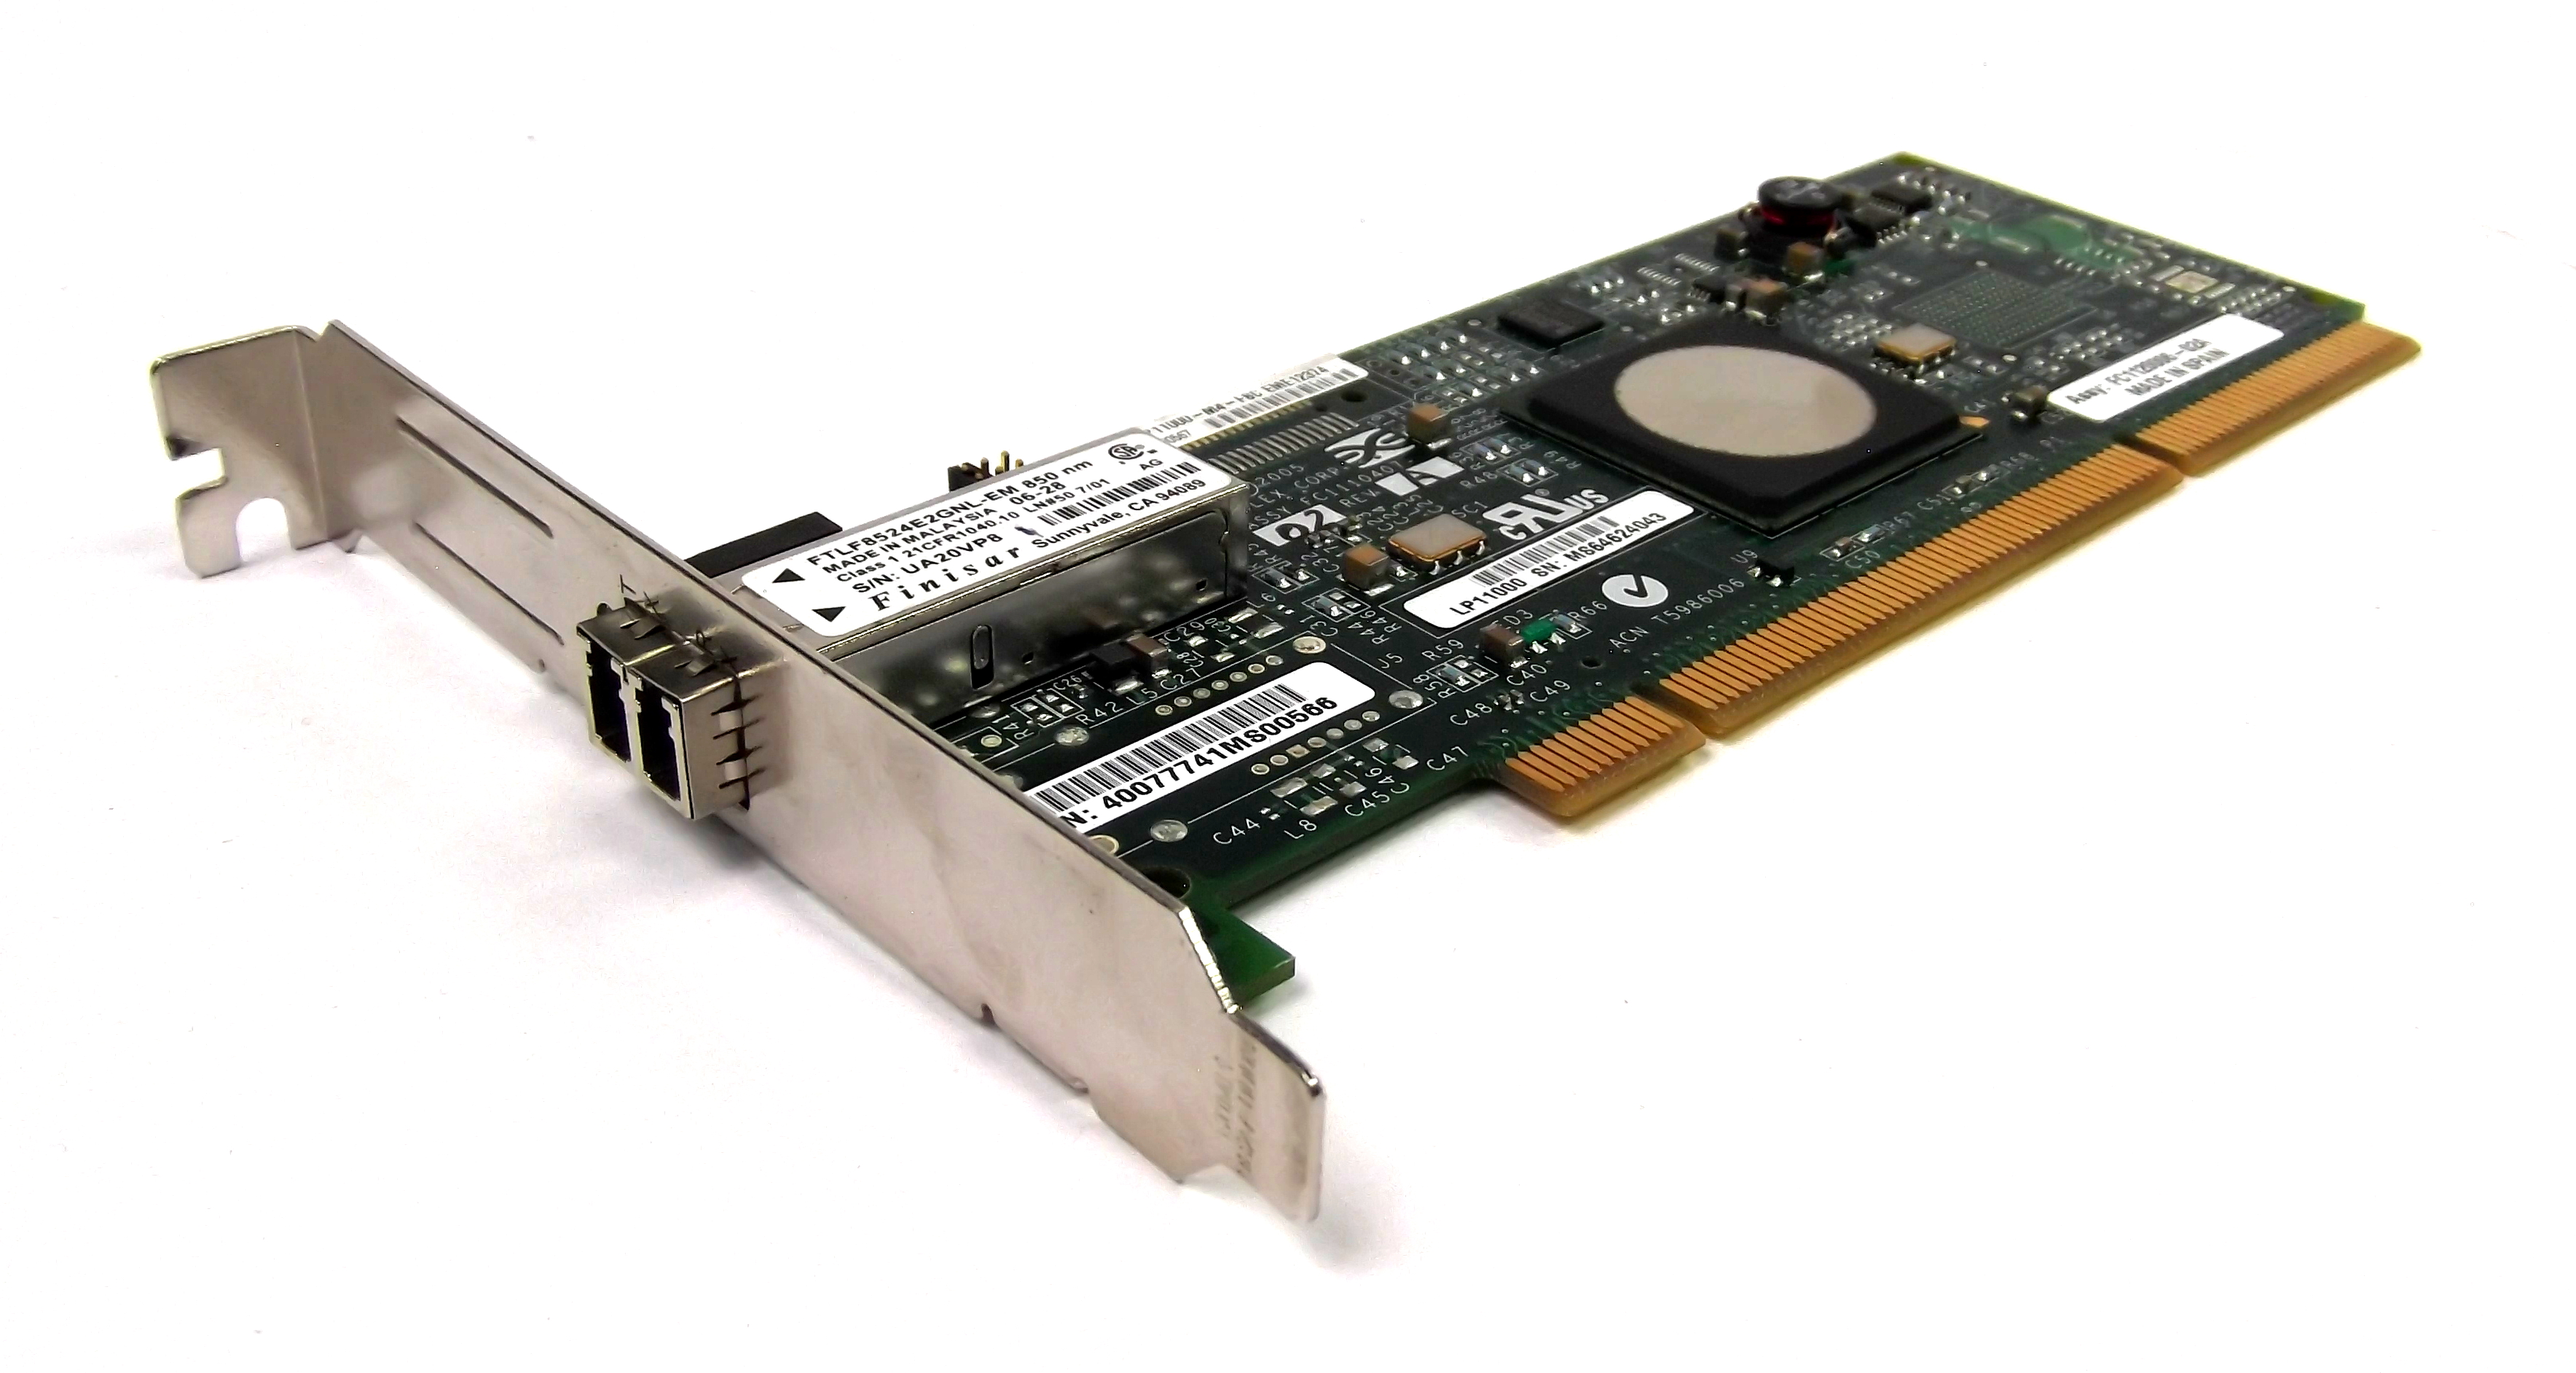 EMULEX LP11000-E DRIVER FOR MAC